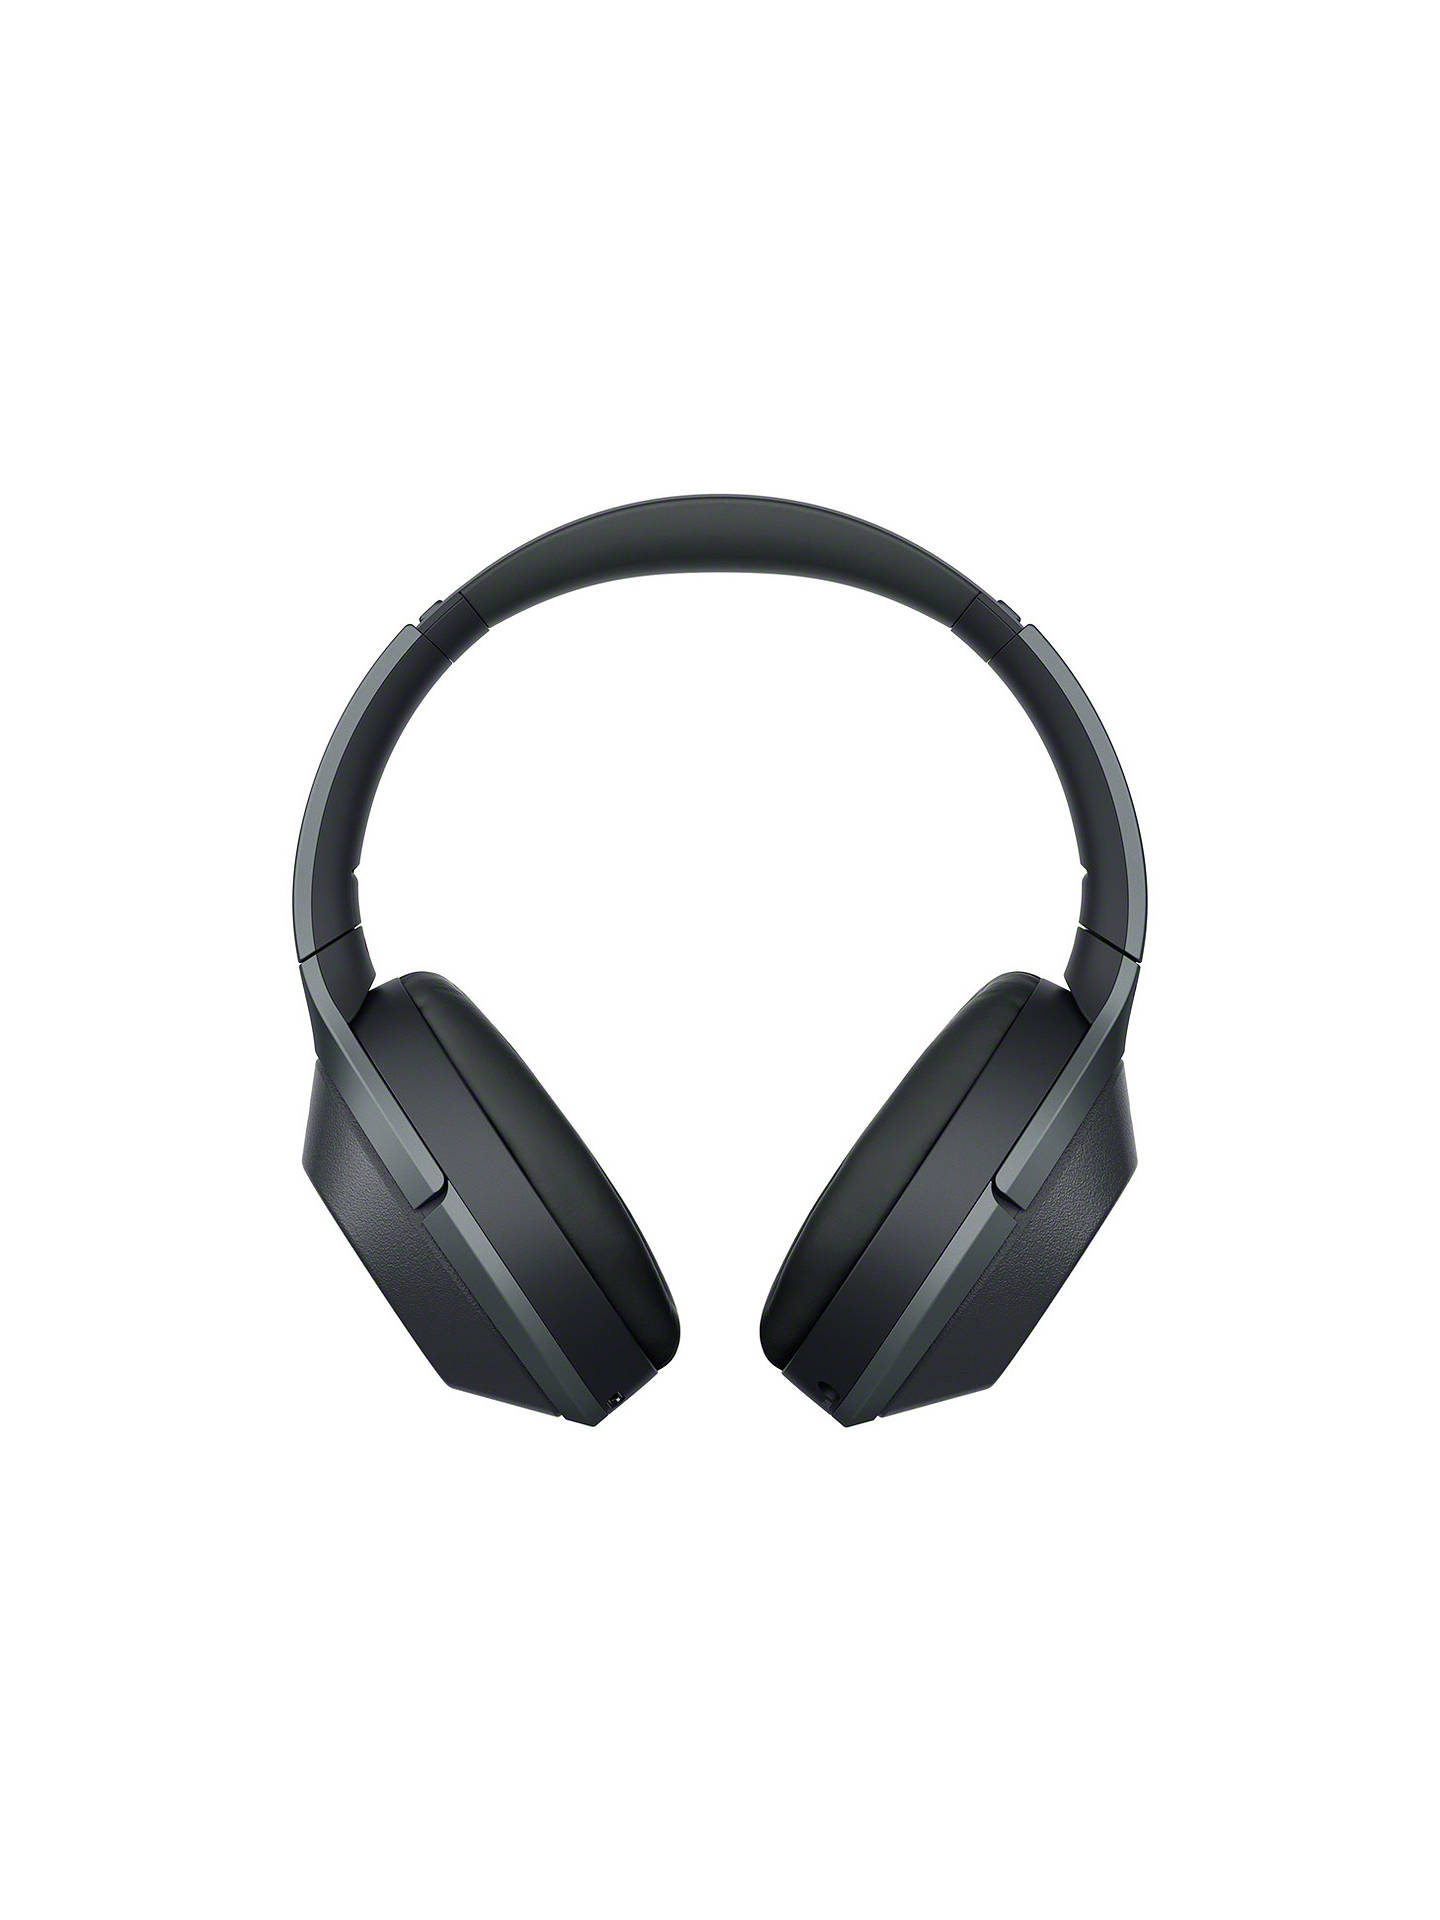 BuySony WH-1000XM2 Noise Cancelling Wireless Bluetooth NFC High Resolution Audio Over-Ear Headphones with Mic/Remote, Black Online at johnlewis.com